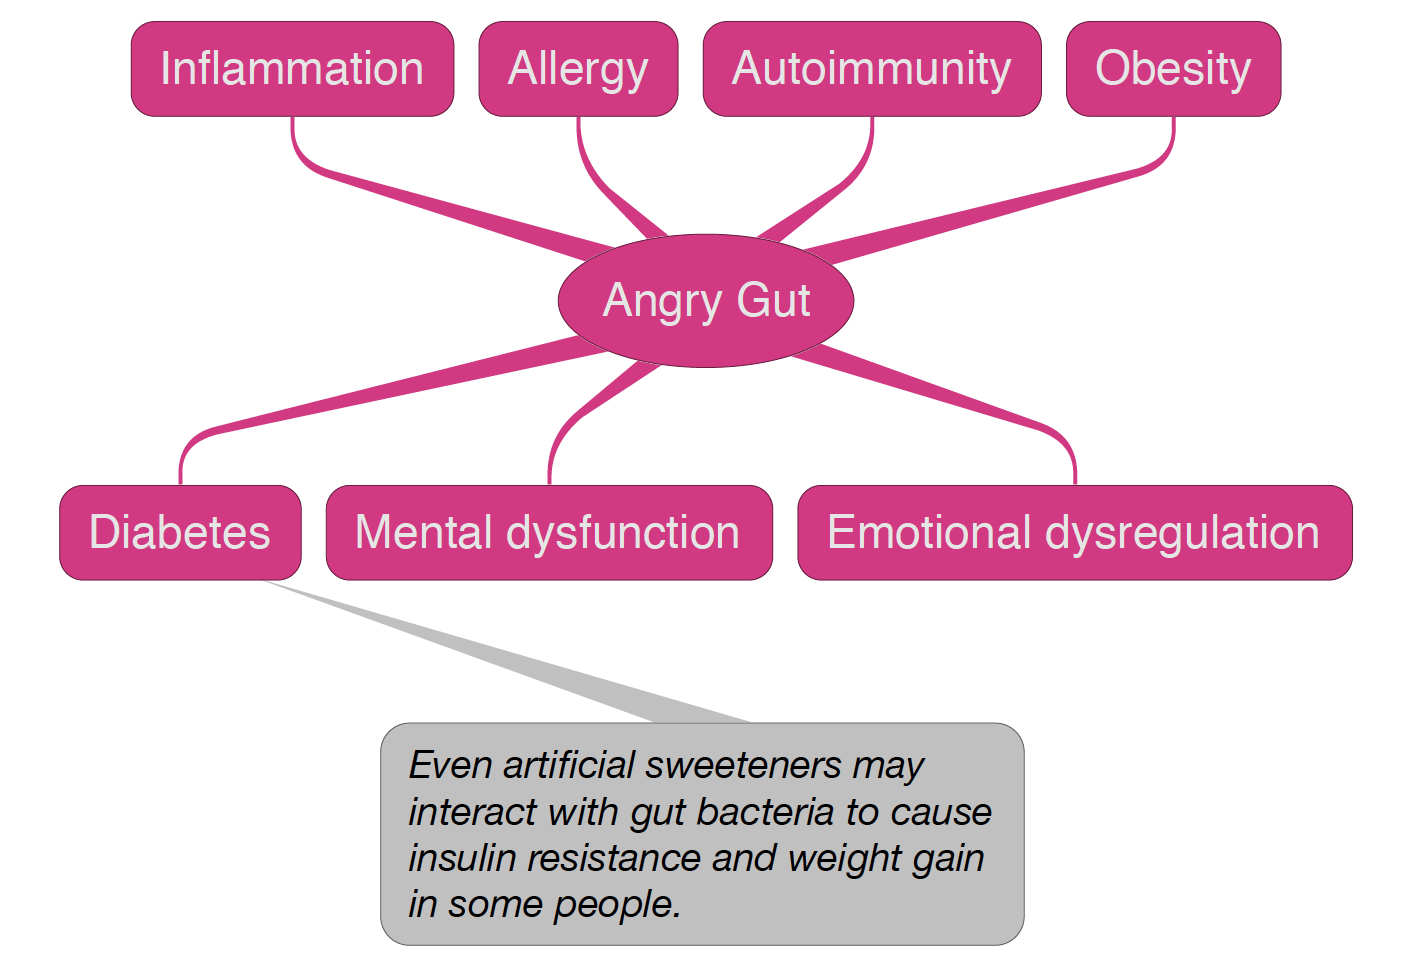 Infographic showing the consequences of an angry gut.